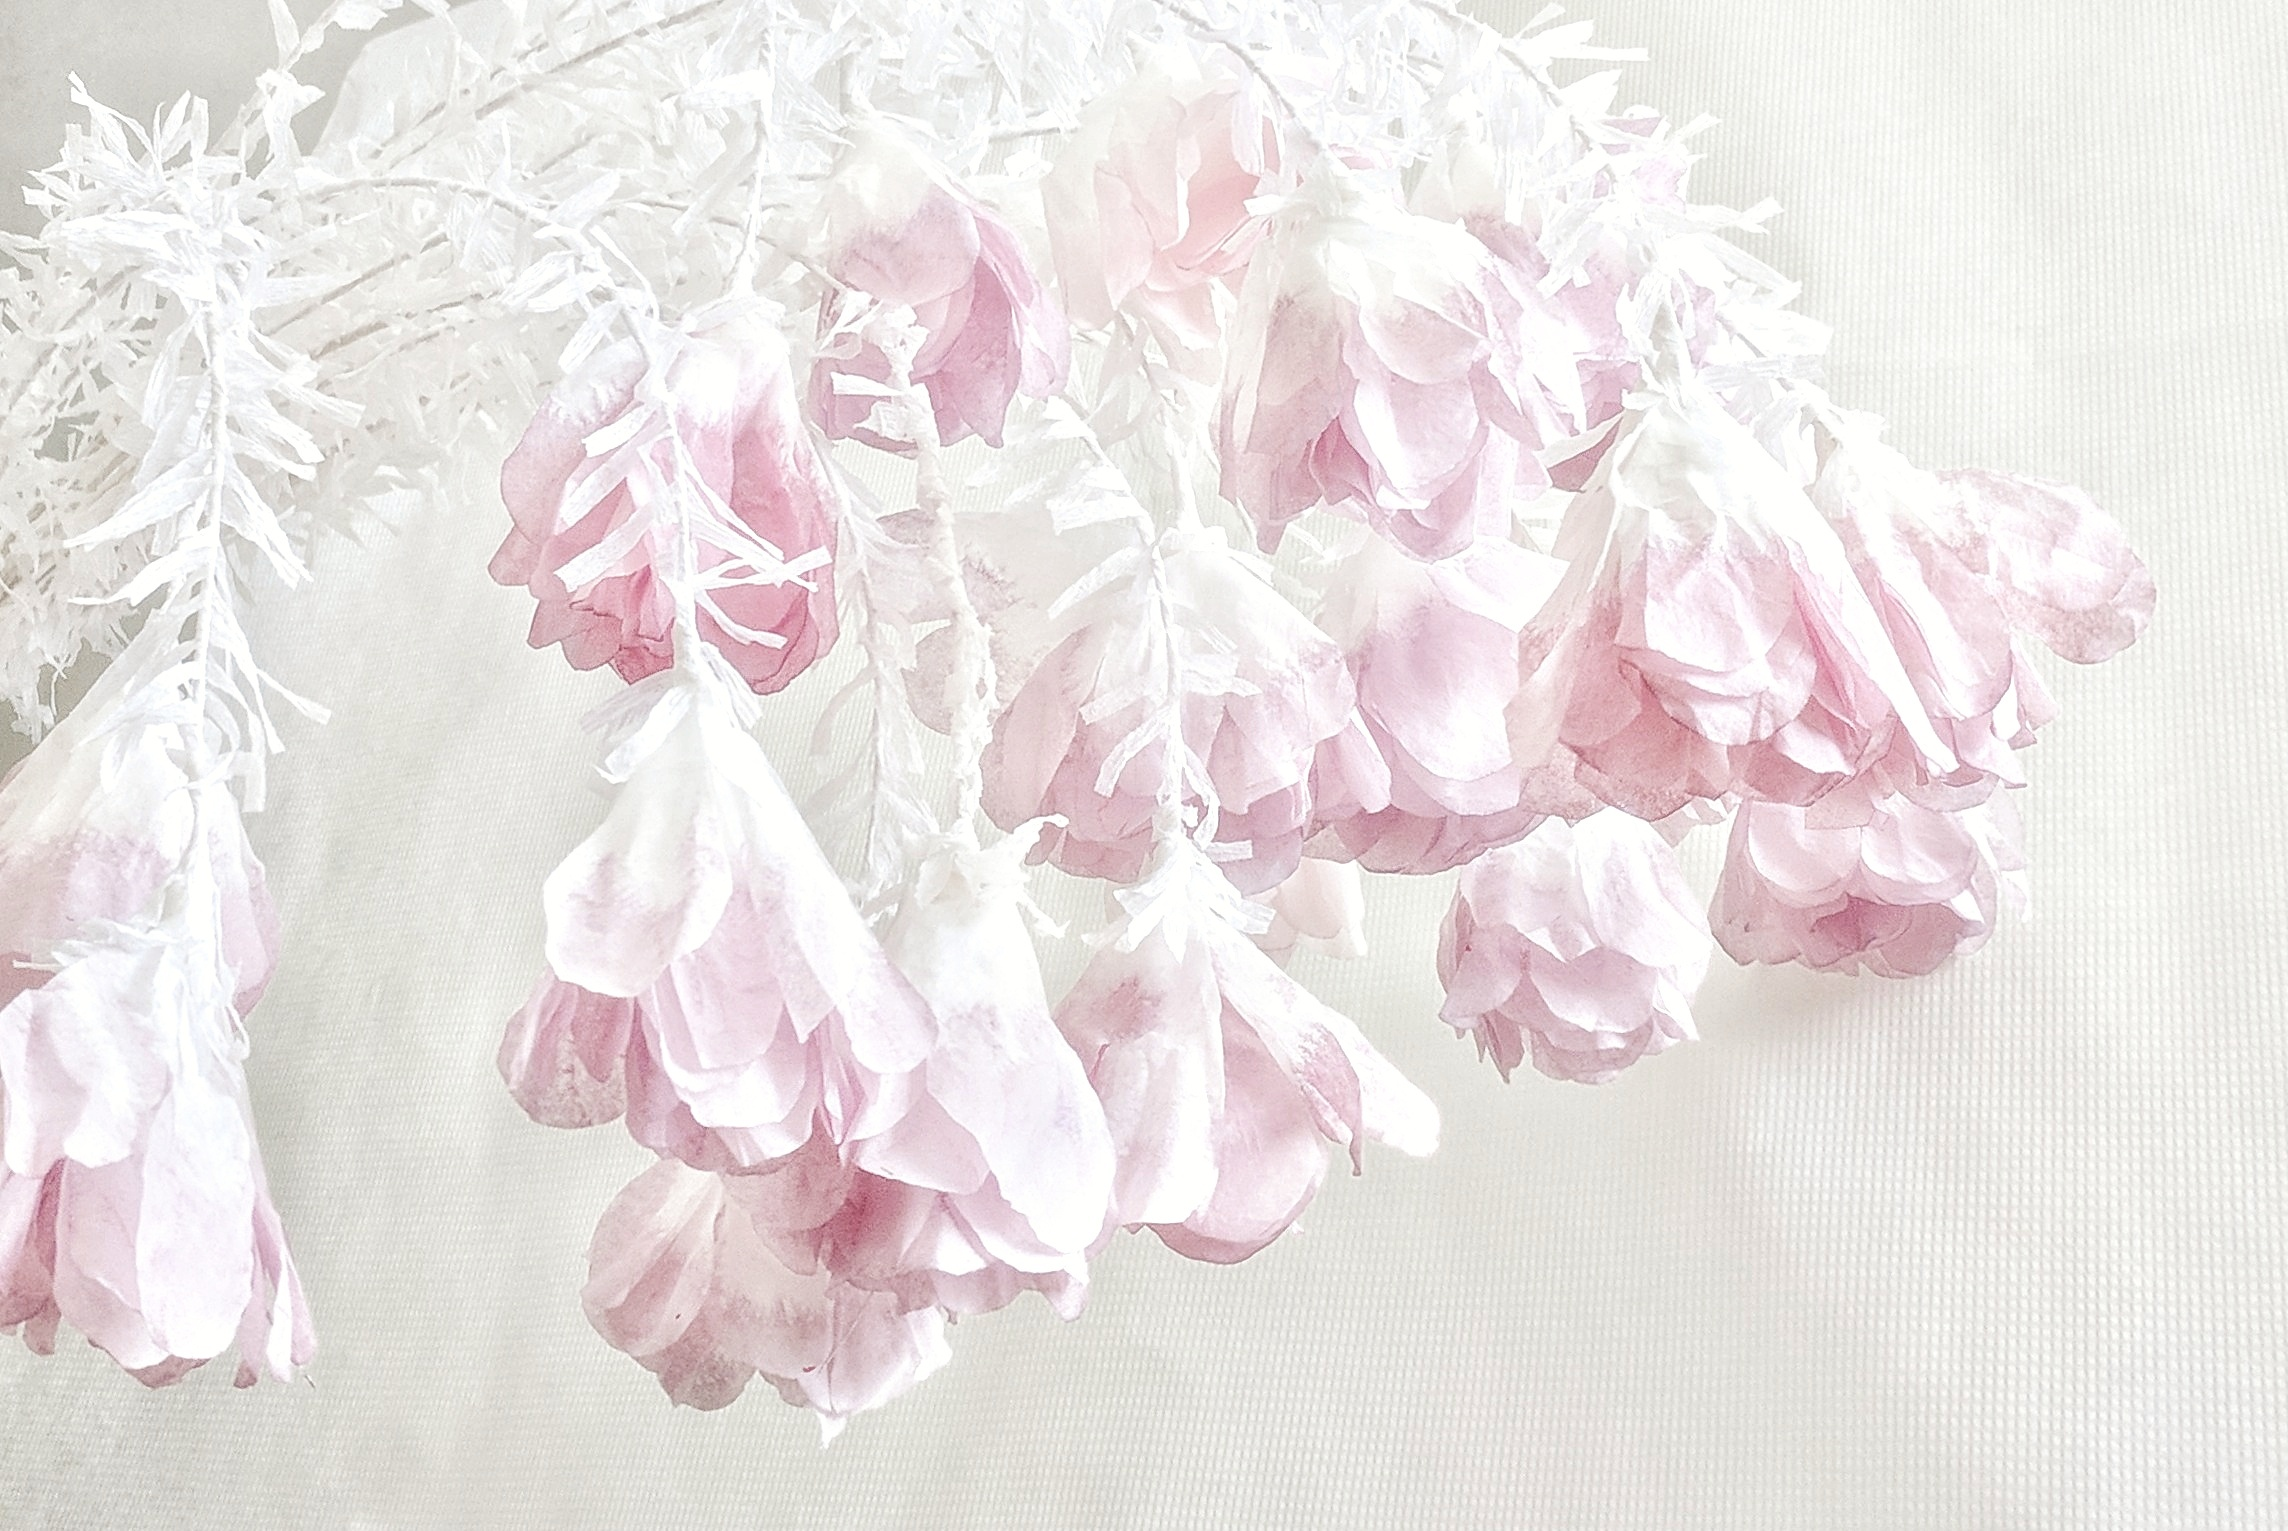 Fill Of Coffee Filters - More fillers; only, these have been manually awakened by hand and stems are covered. They are simple and pretty enough to use as wedding decorations or as wedding centrepieces.